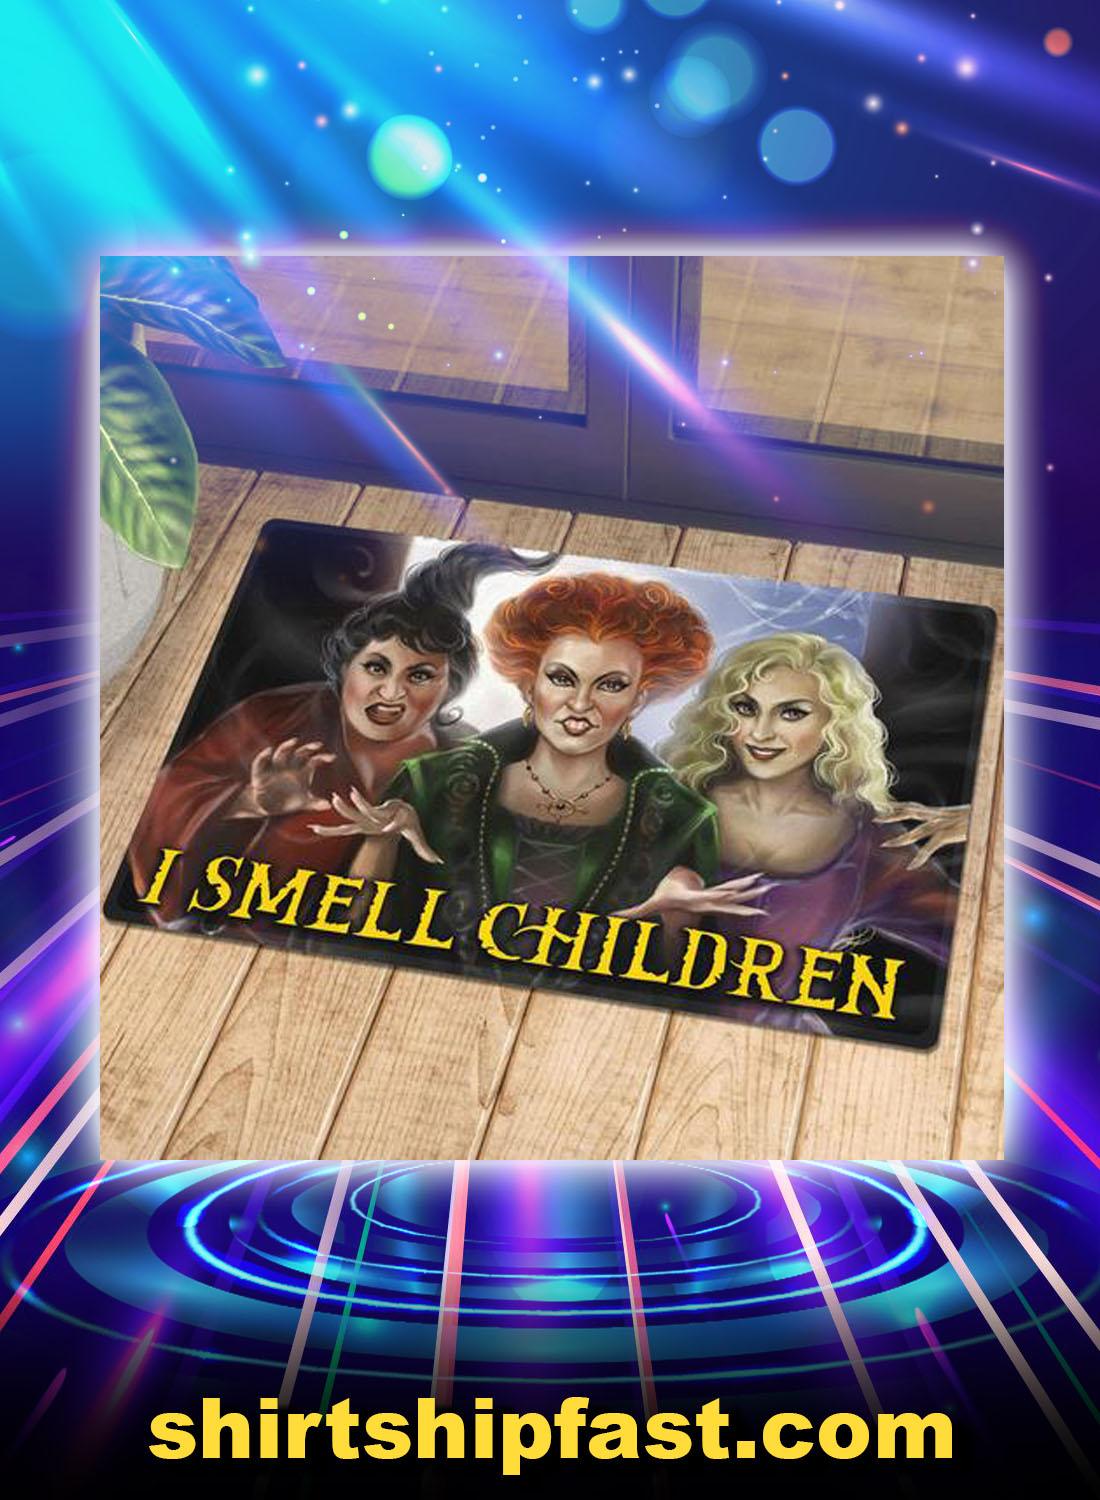 Hocus pocus i smell children doormat - Picture 1